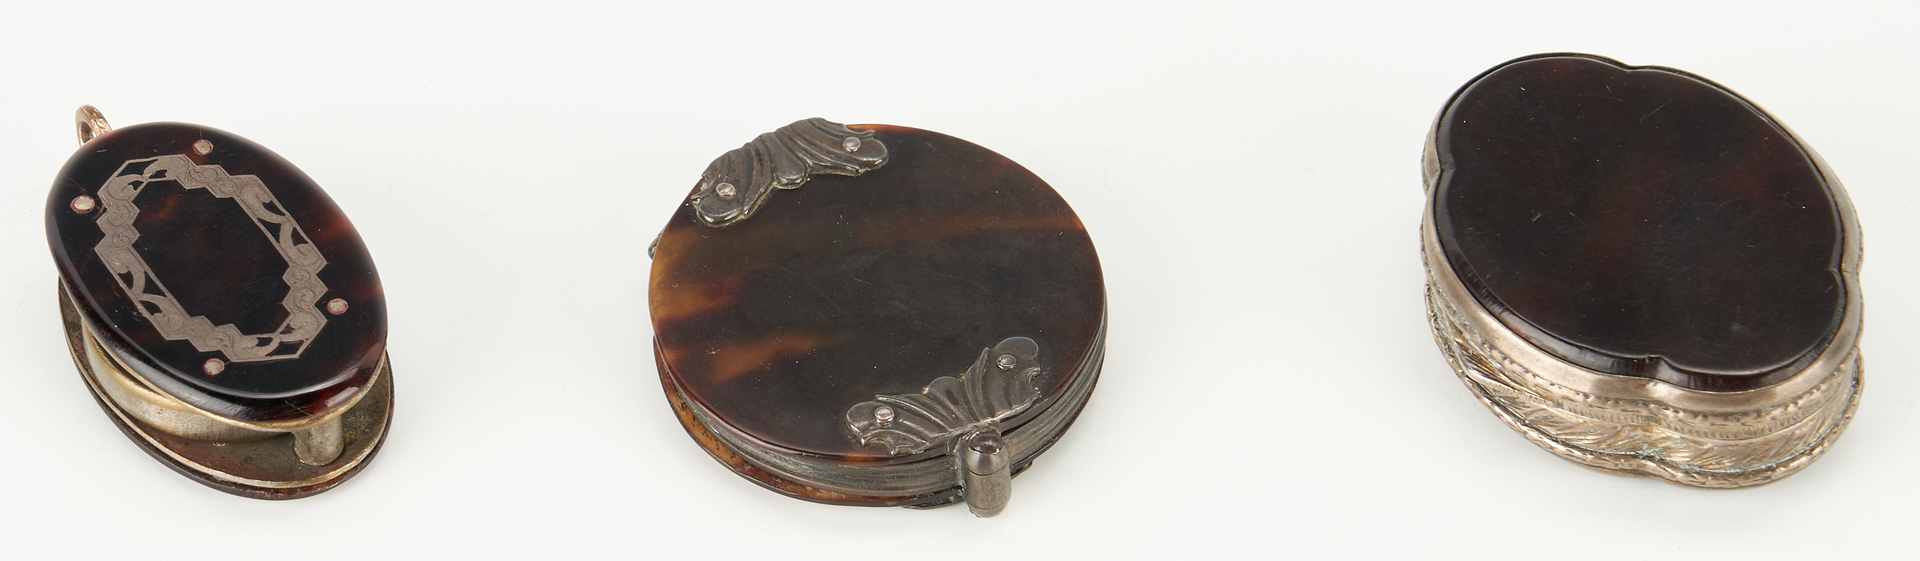 Lot 79: 4 Tortoiseshell Boxes and 2 Magnifiers, 6 items